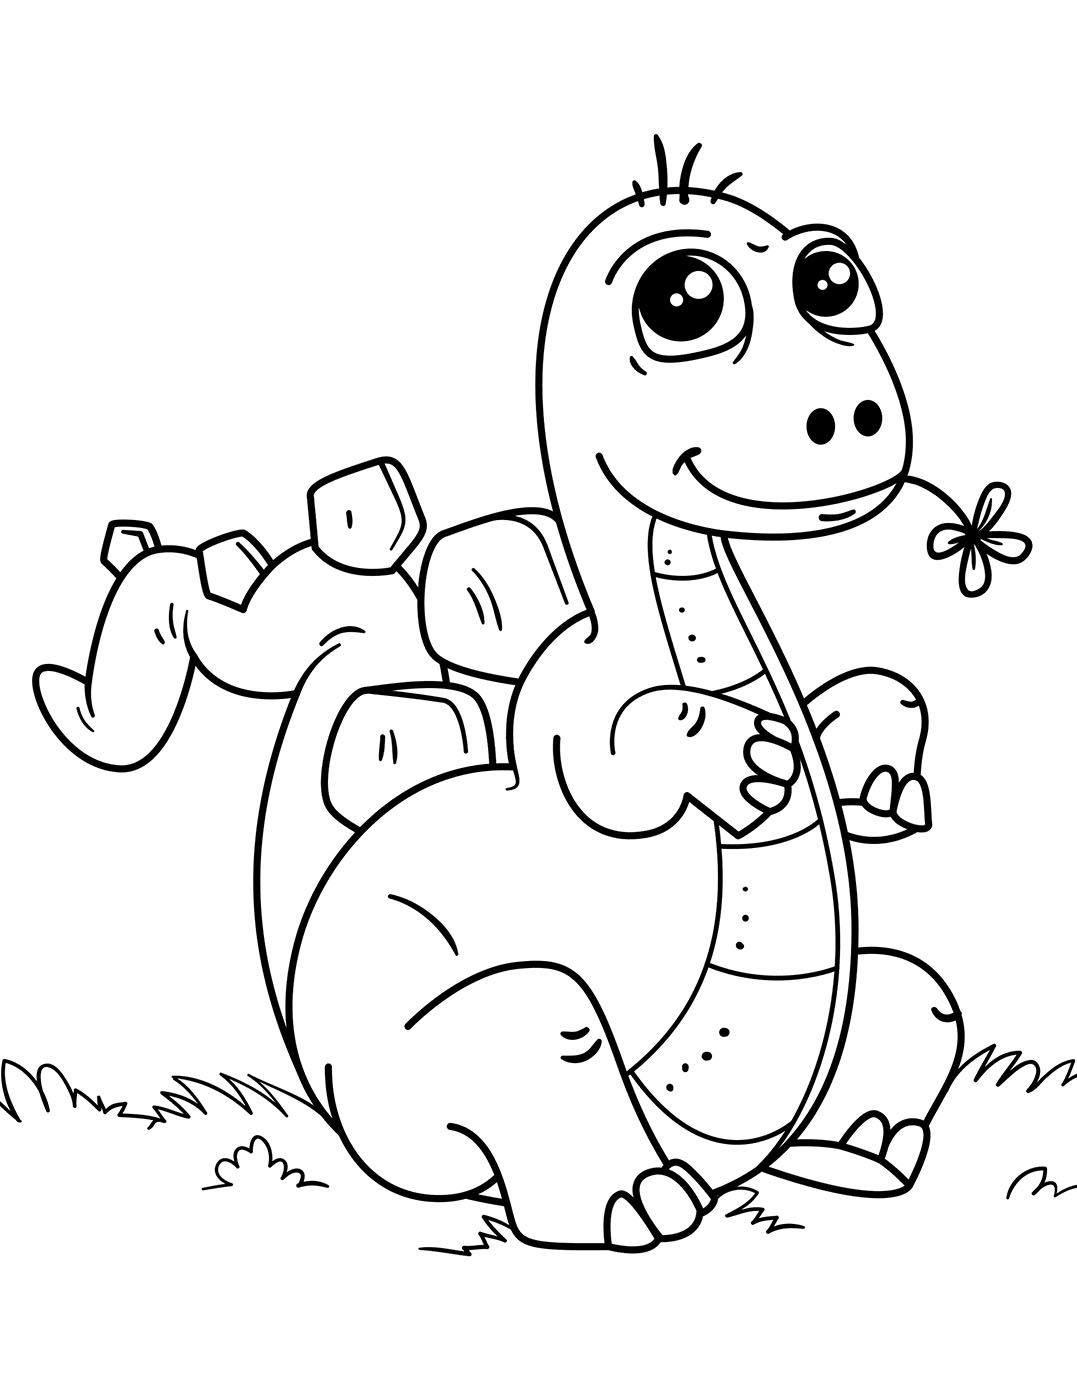 childrens coloring pages dinosaurs free printable dinosaur coloring pages for kids dinosaurs coloring pages childrens